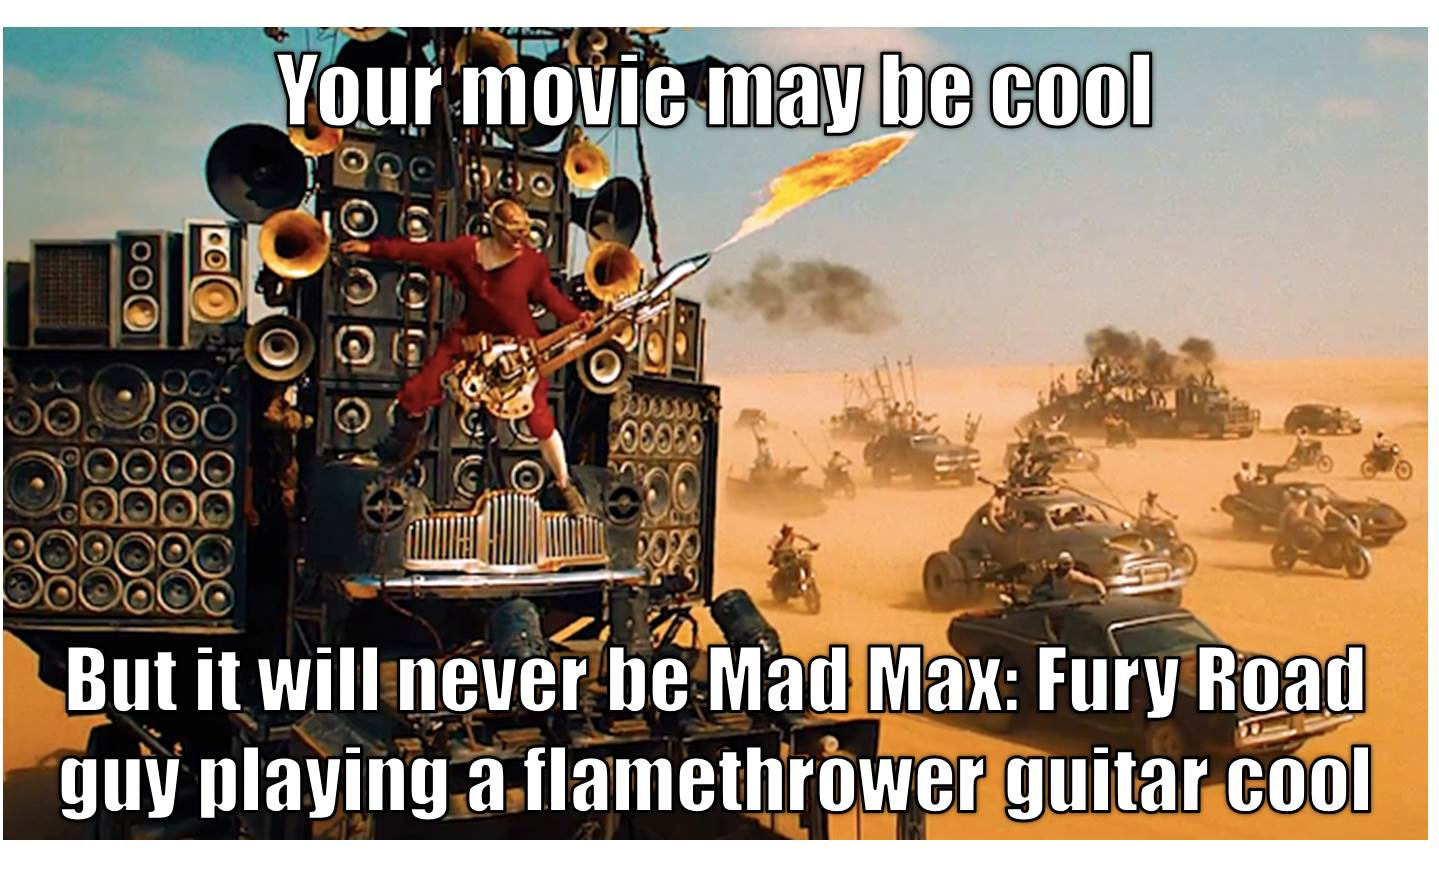 Mad Max Fury Road guy playing guitar cool meme